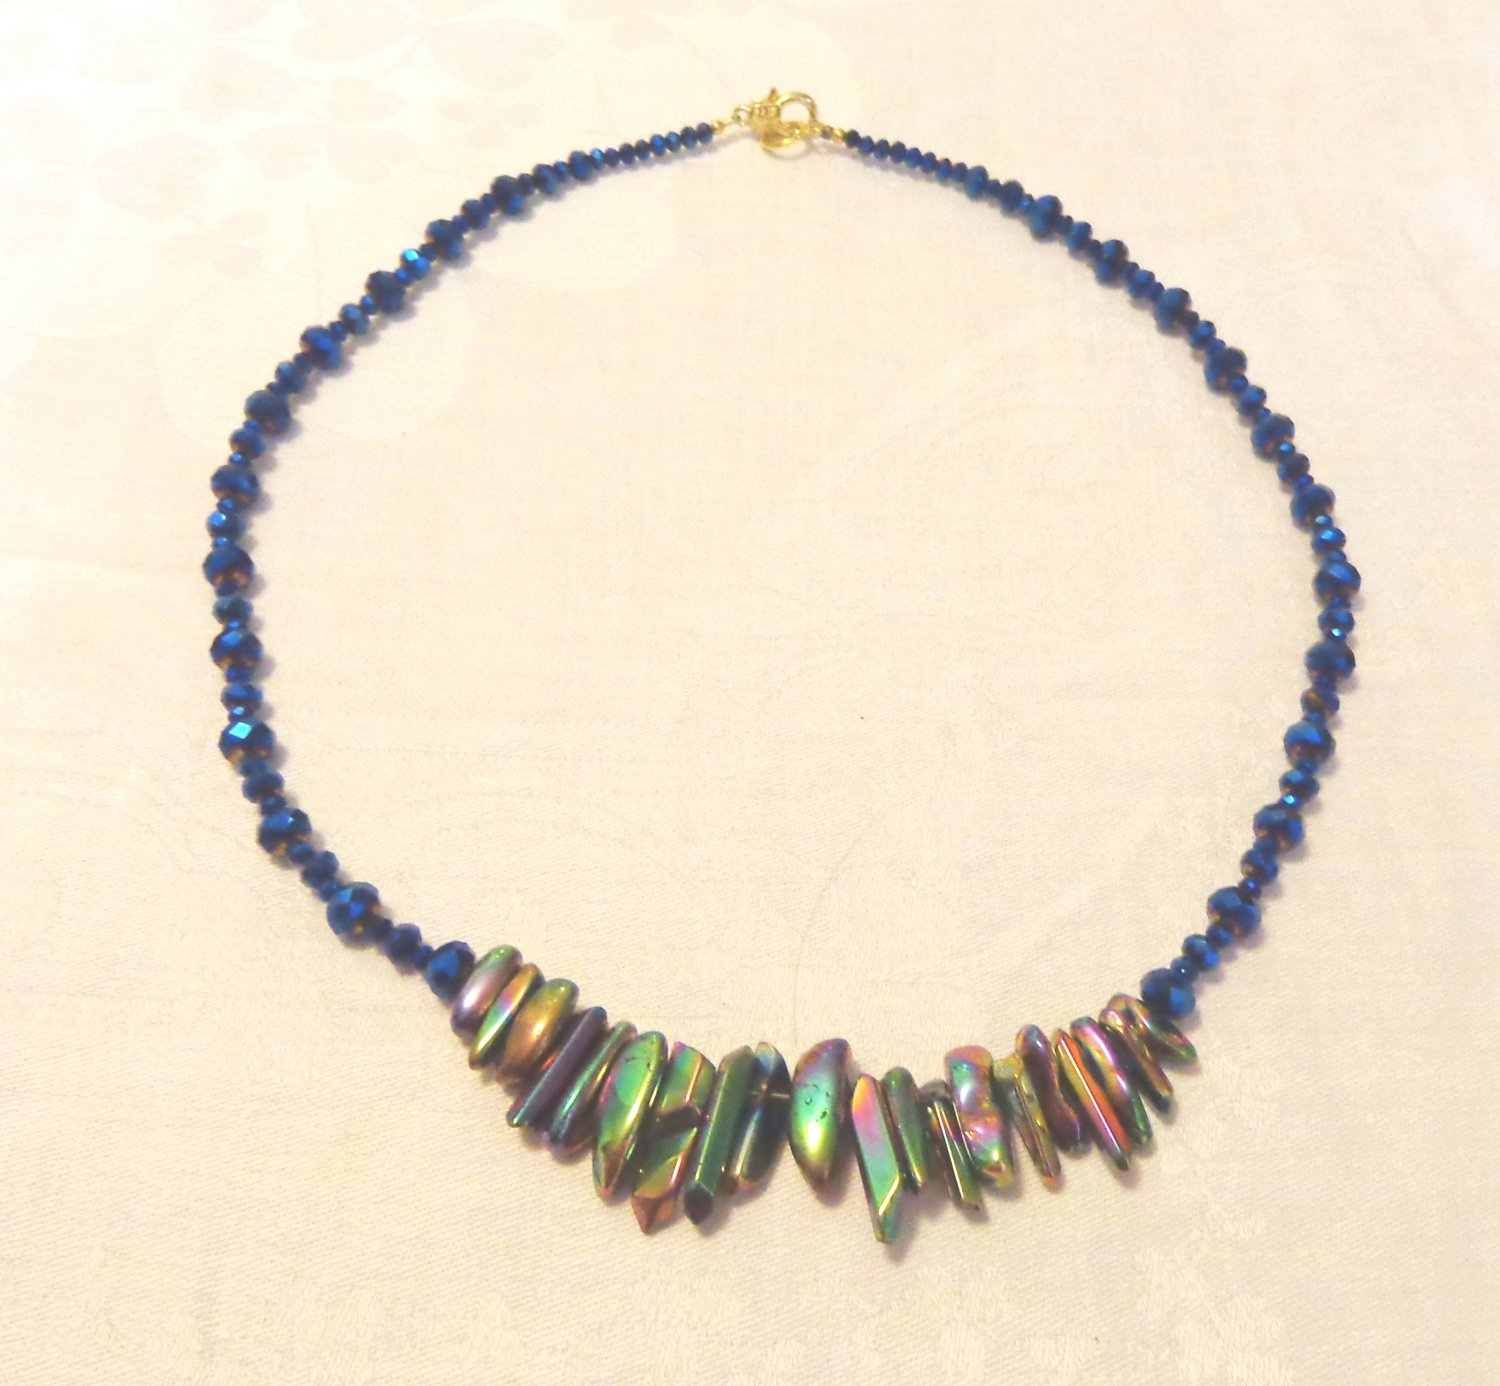 Elegant necklace abalone and faceted dark aurora borealis 24 inches clasp perfect handmade ll3530